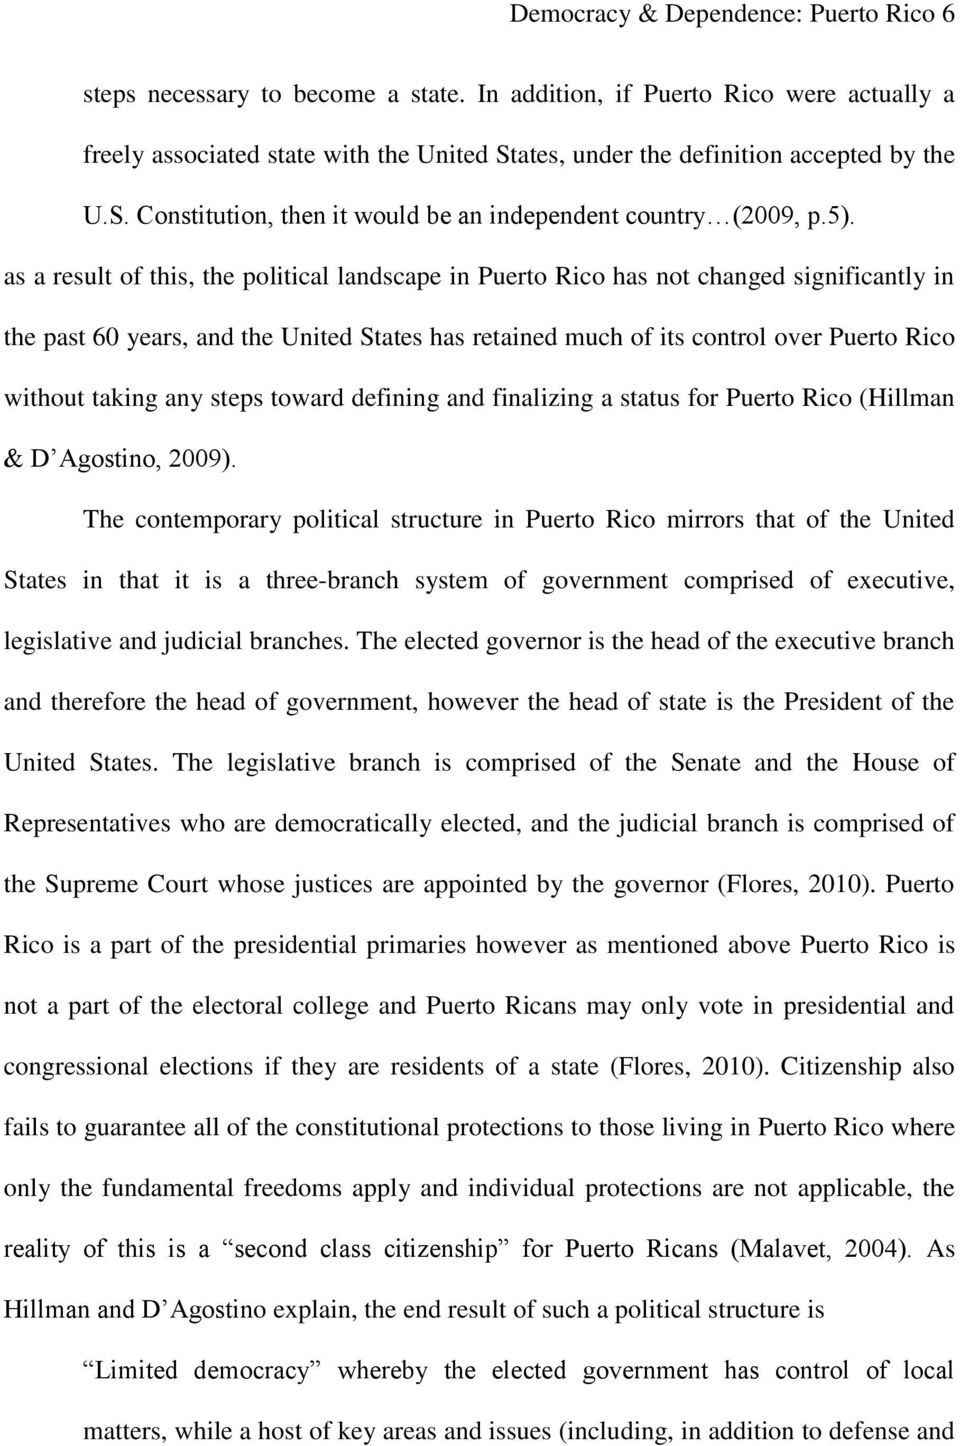 as a result of this, the political landscape in Puerto Rico has not changed significantly in the past 60 years, and the United States has retained much of its control over Puerto Rico without taking